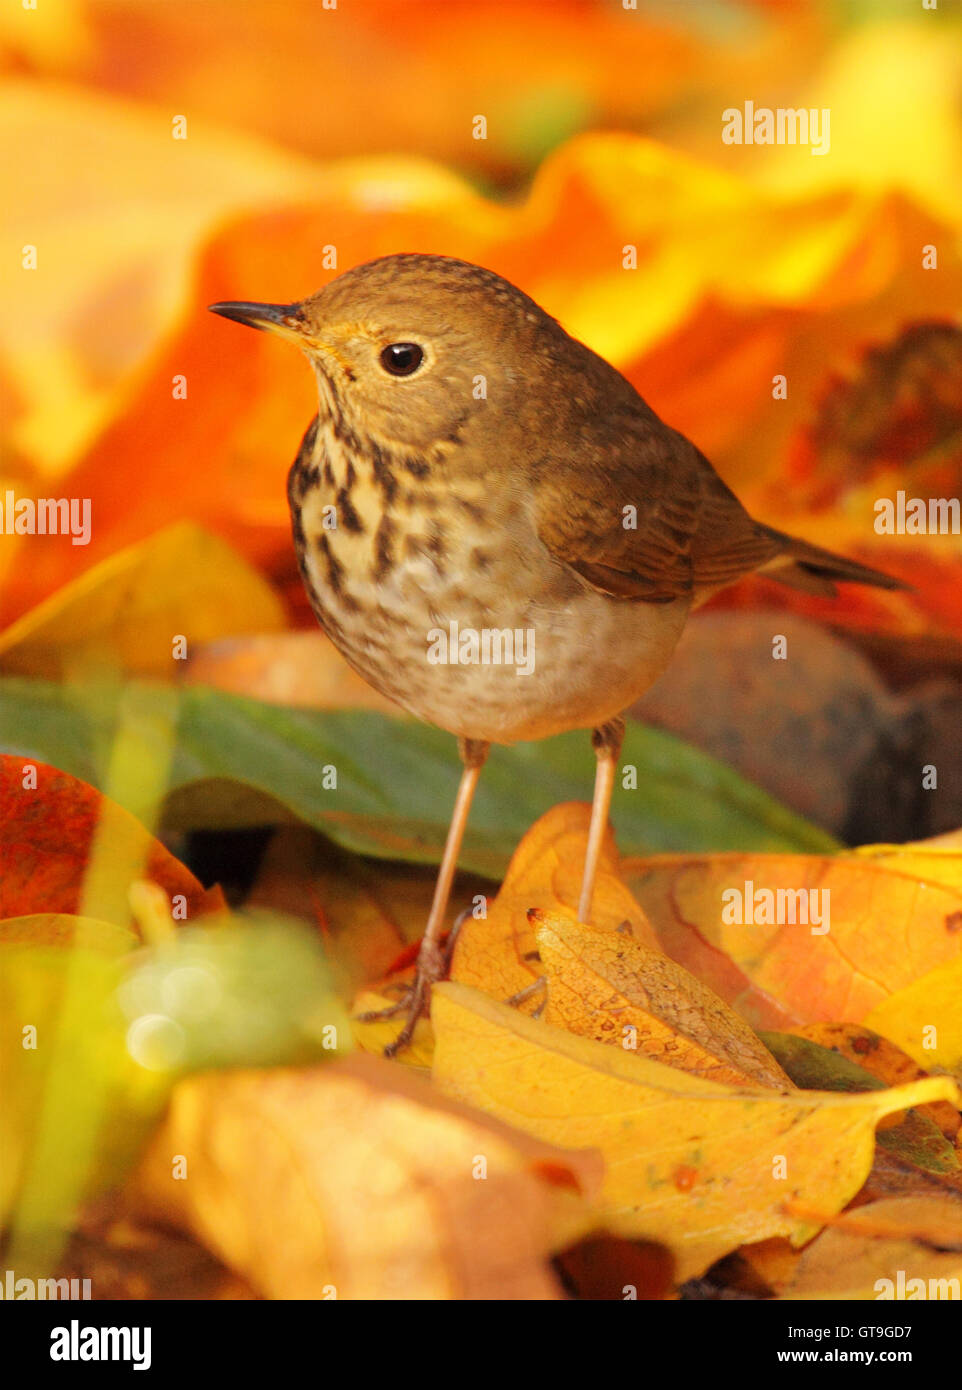 A Swainson's Thrush among bright autumn leaves. Stock Photo